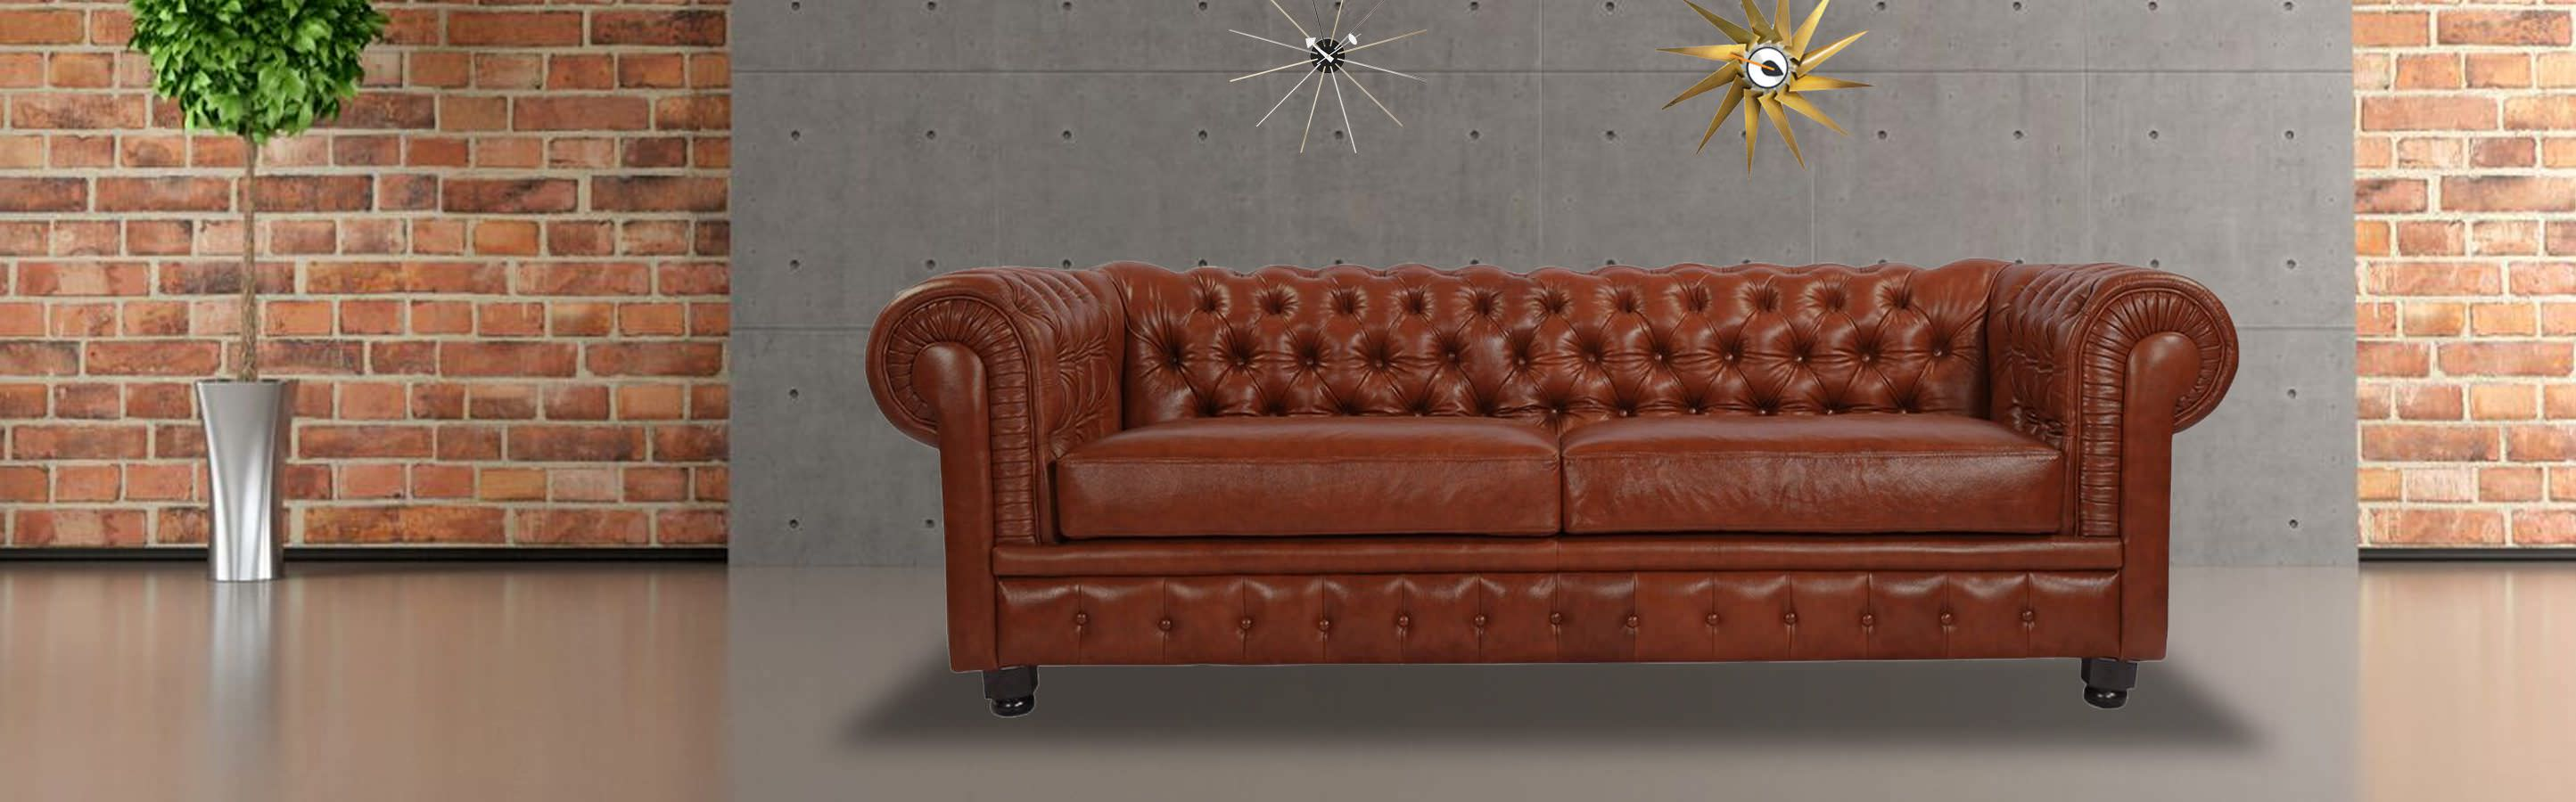 Chesterfield Sofa  Cognac Vintage Distressed Leather   Kardiel chesterfieldsofa